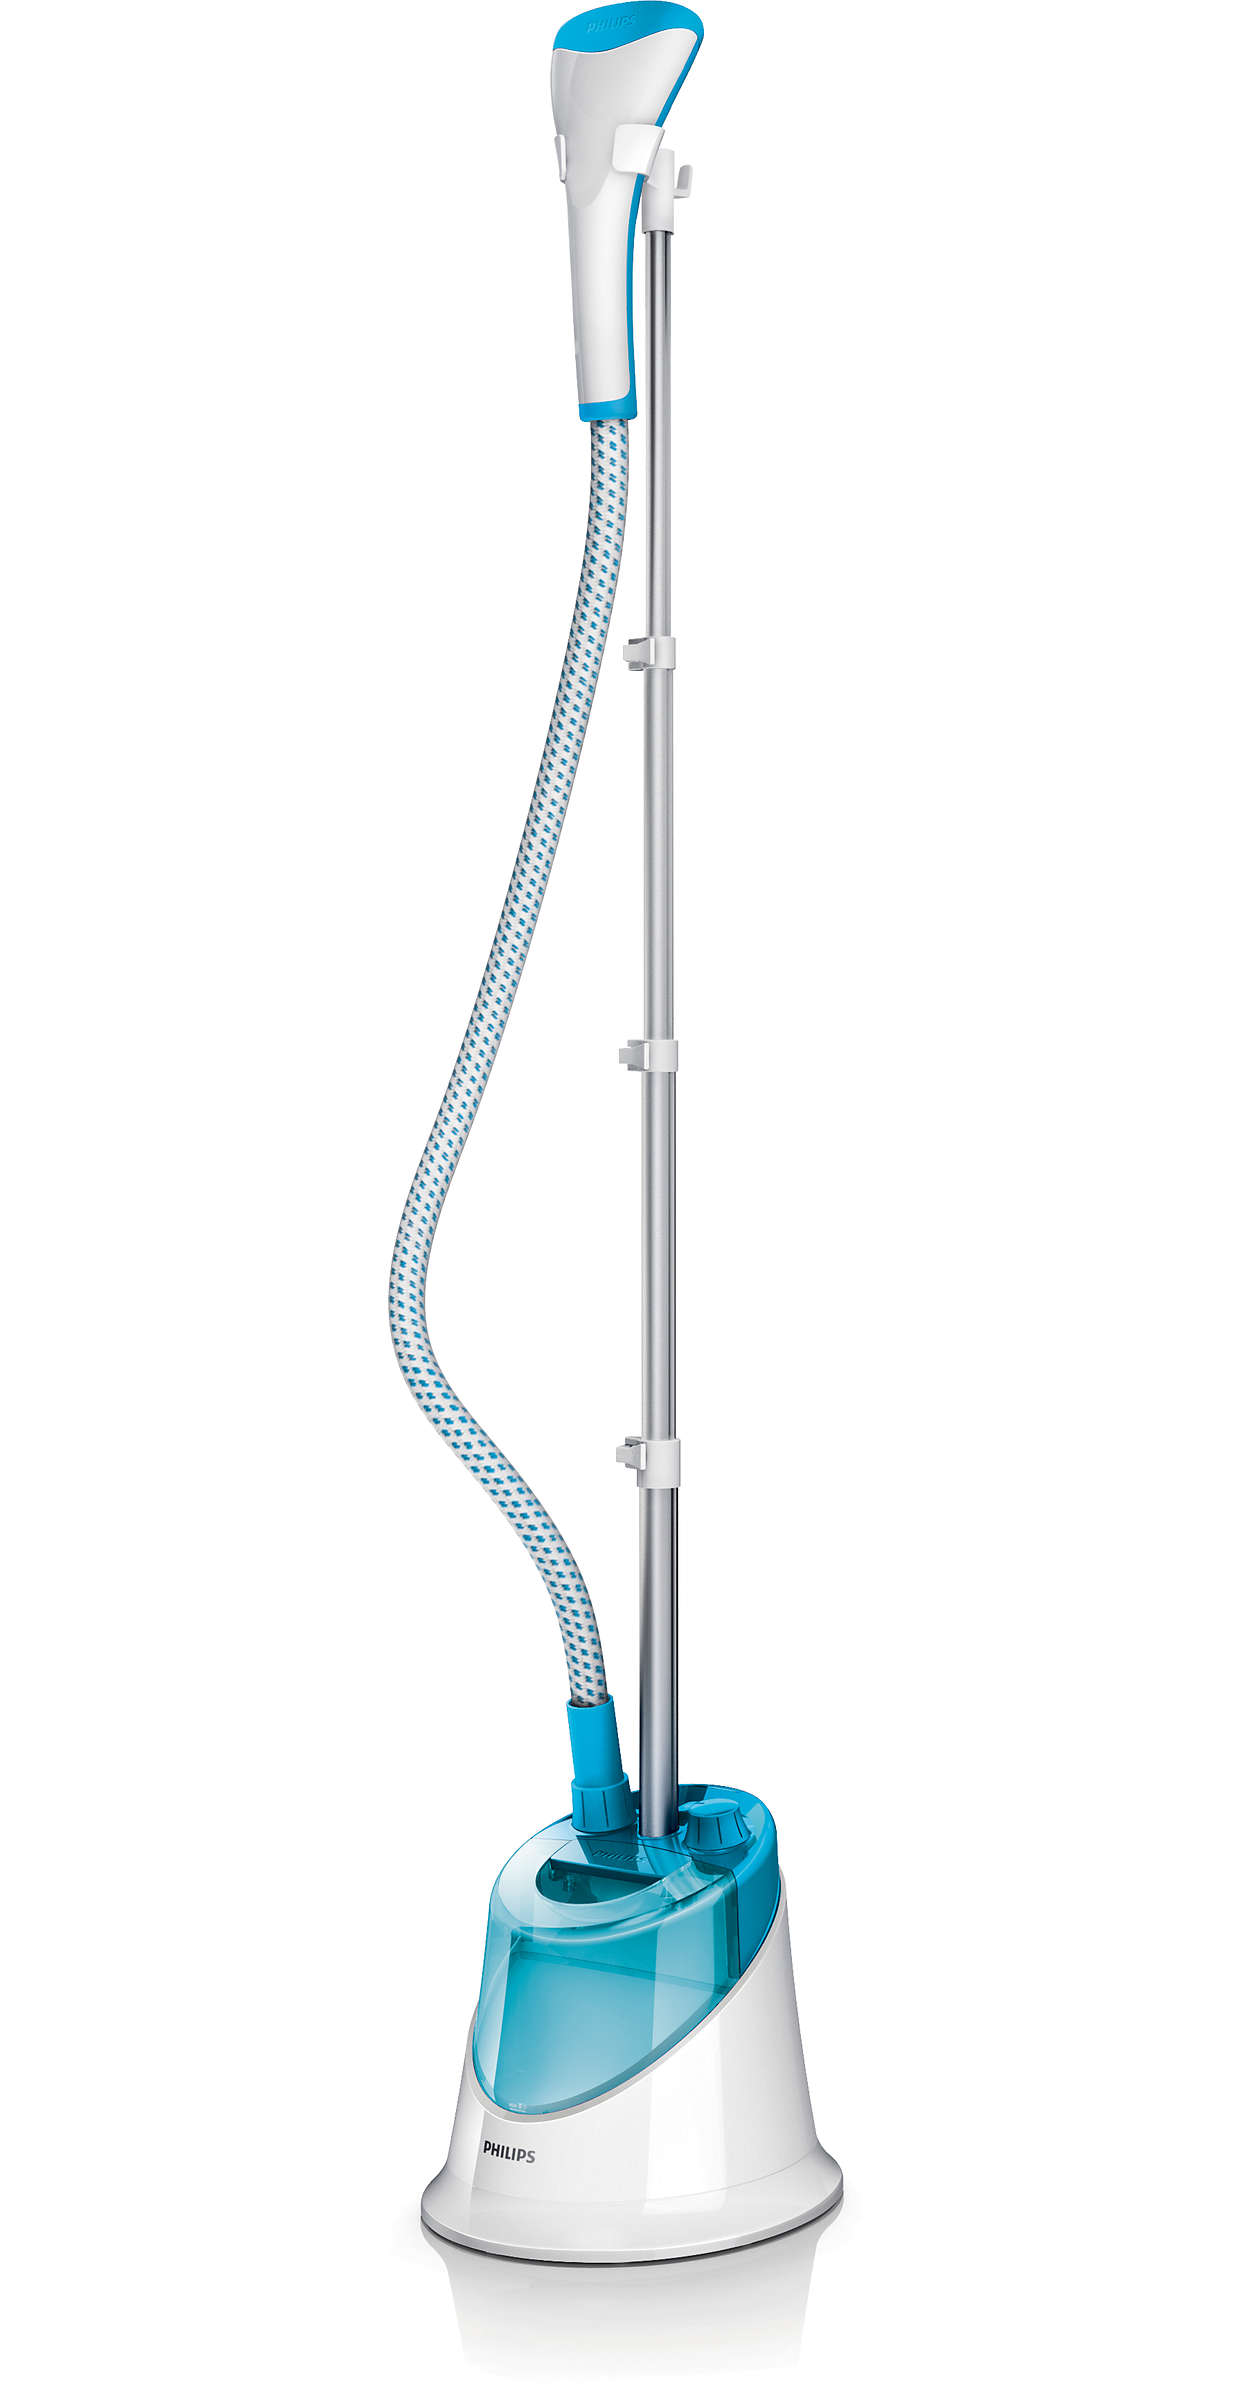 Dailytouch garment steamer gc502 20 philips - Six advantages using garment steamer ...